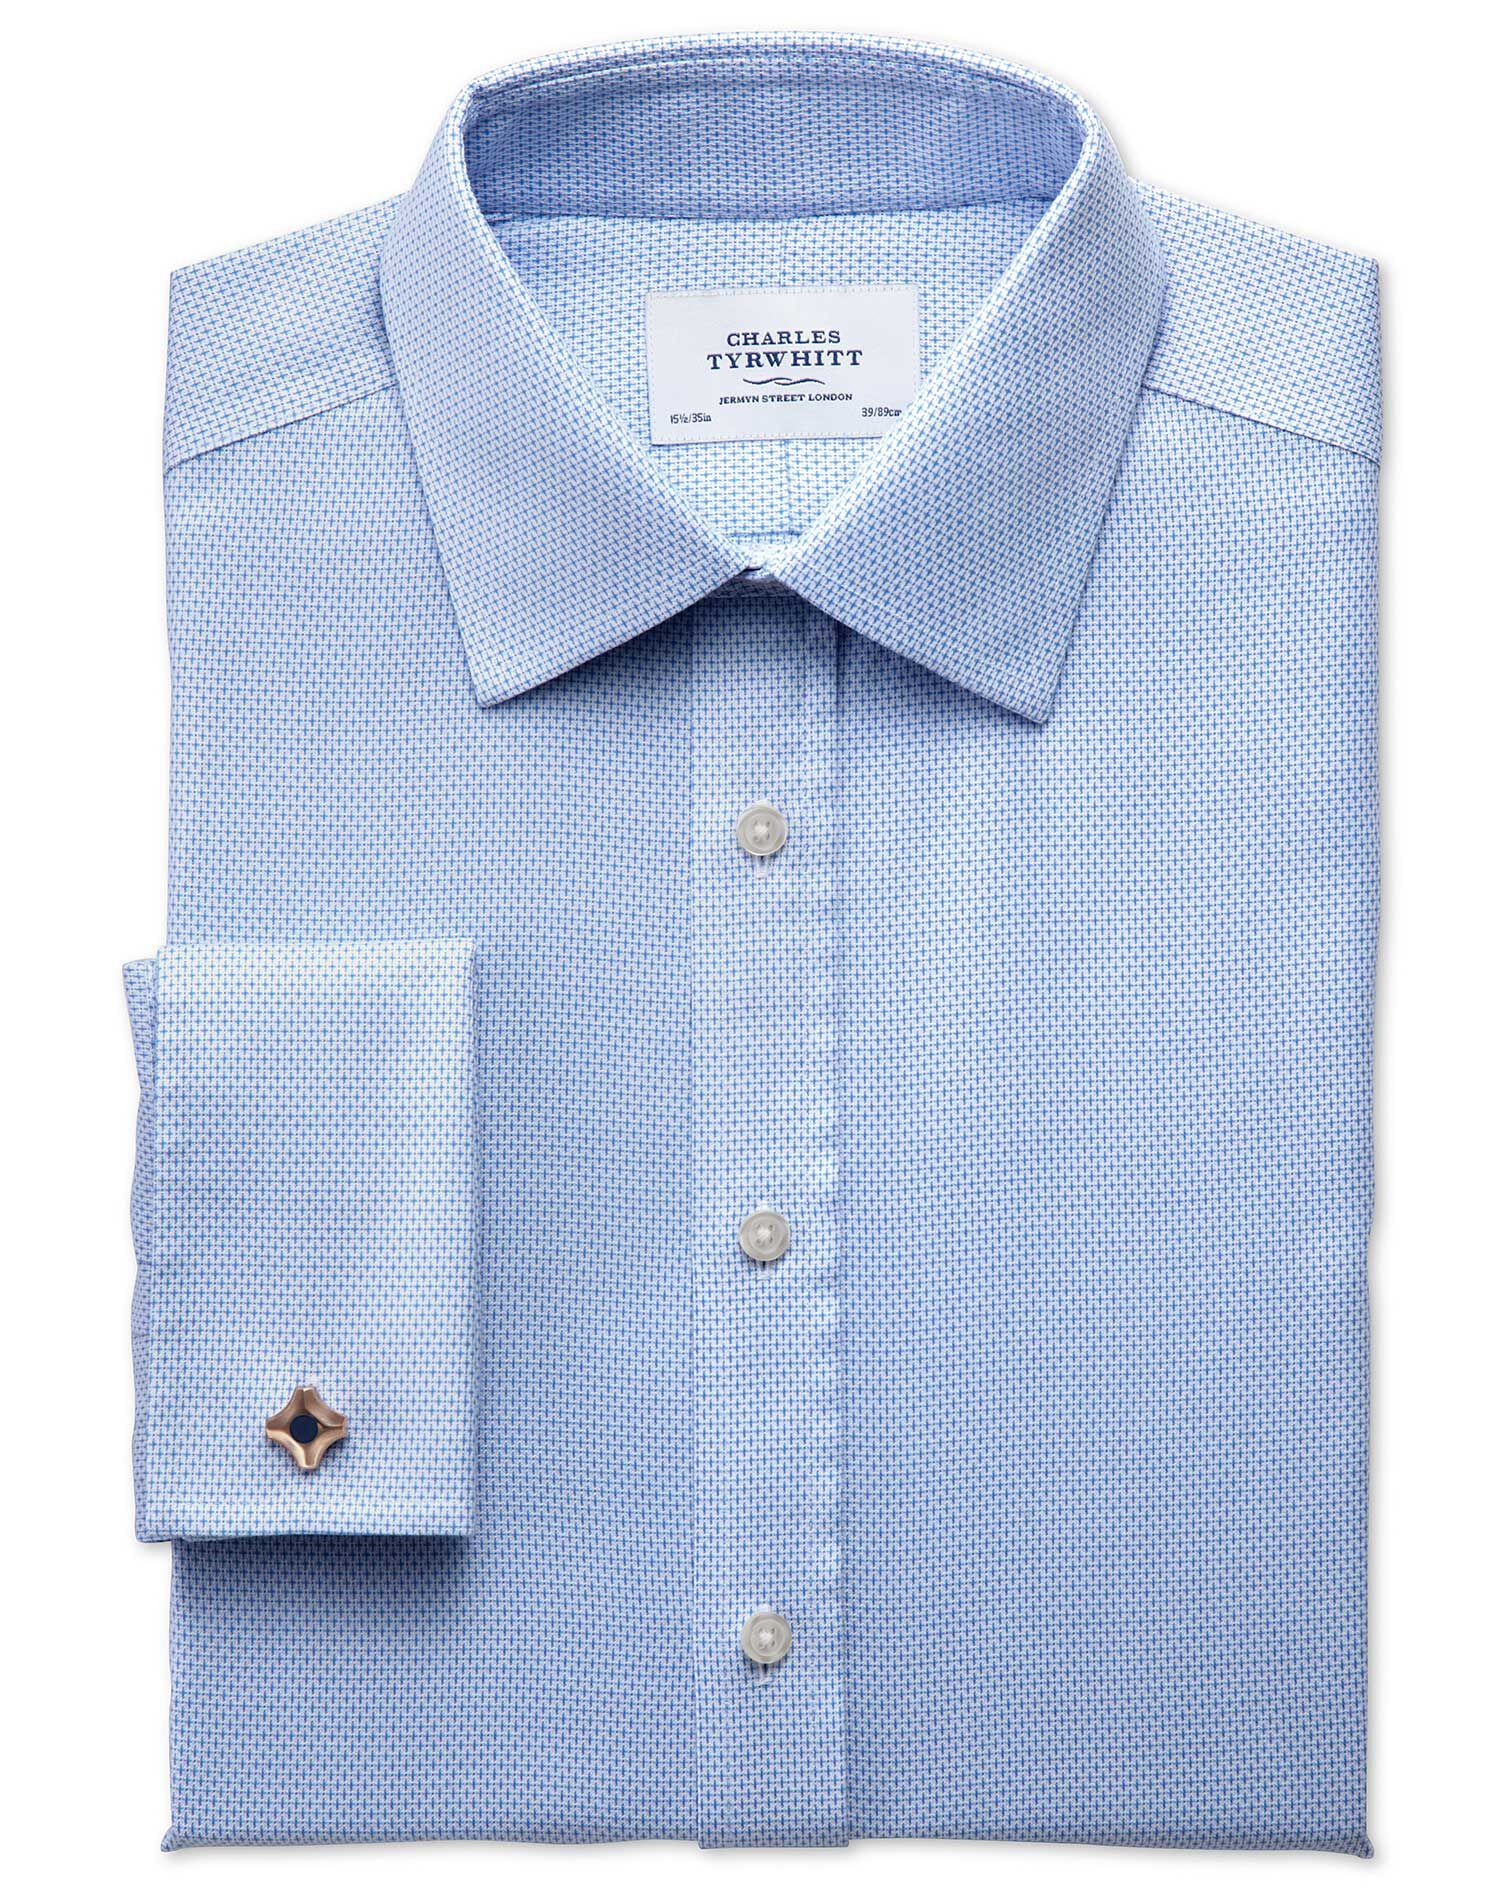 Slim Fit Non-Iron Imperial Weave Sky Blue Cotton Formal Shirt Double Cuff Size 16/35 by Charles Tyrw